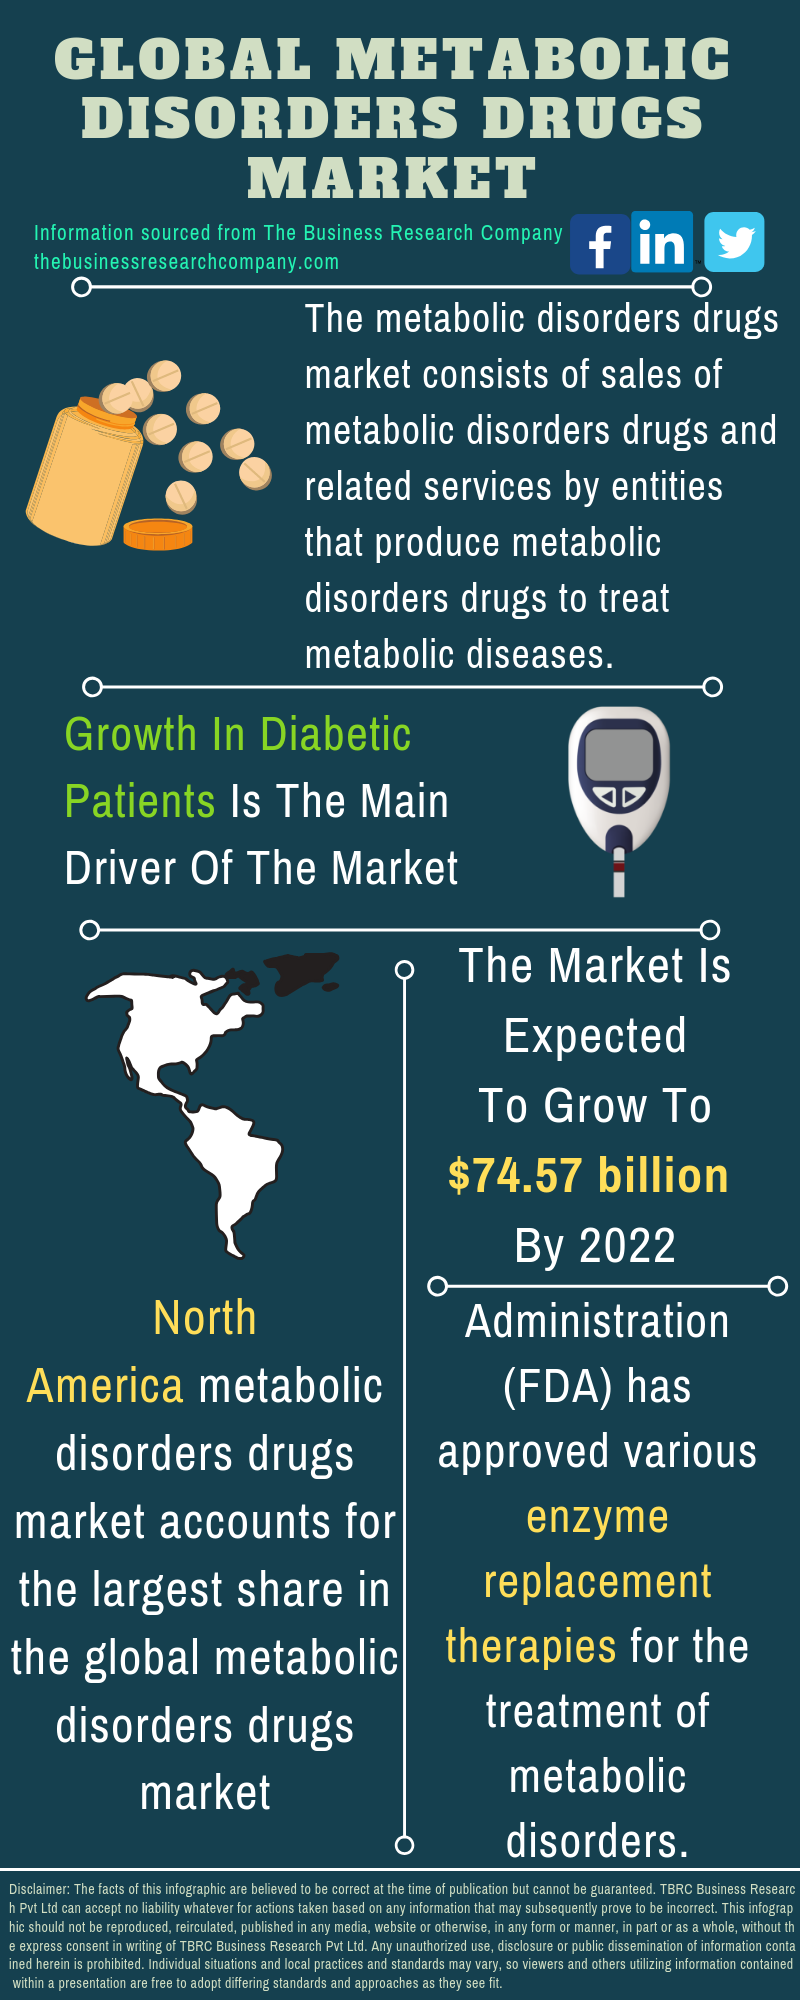 Metabolic Disorders Drugs Market